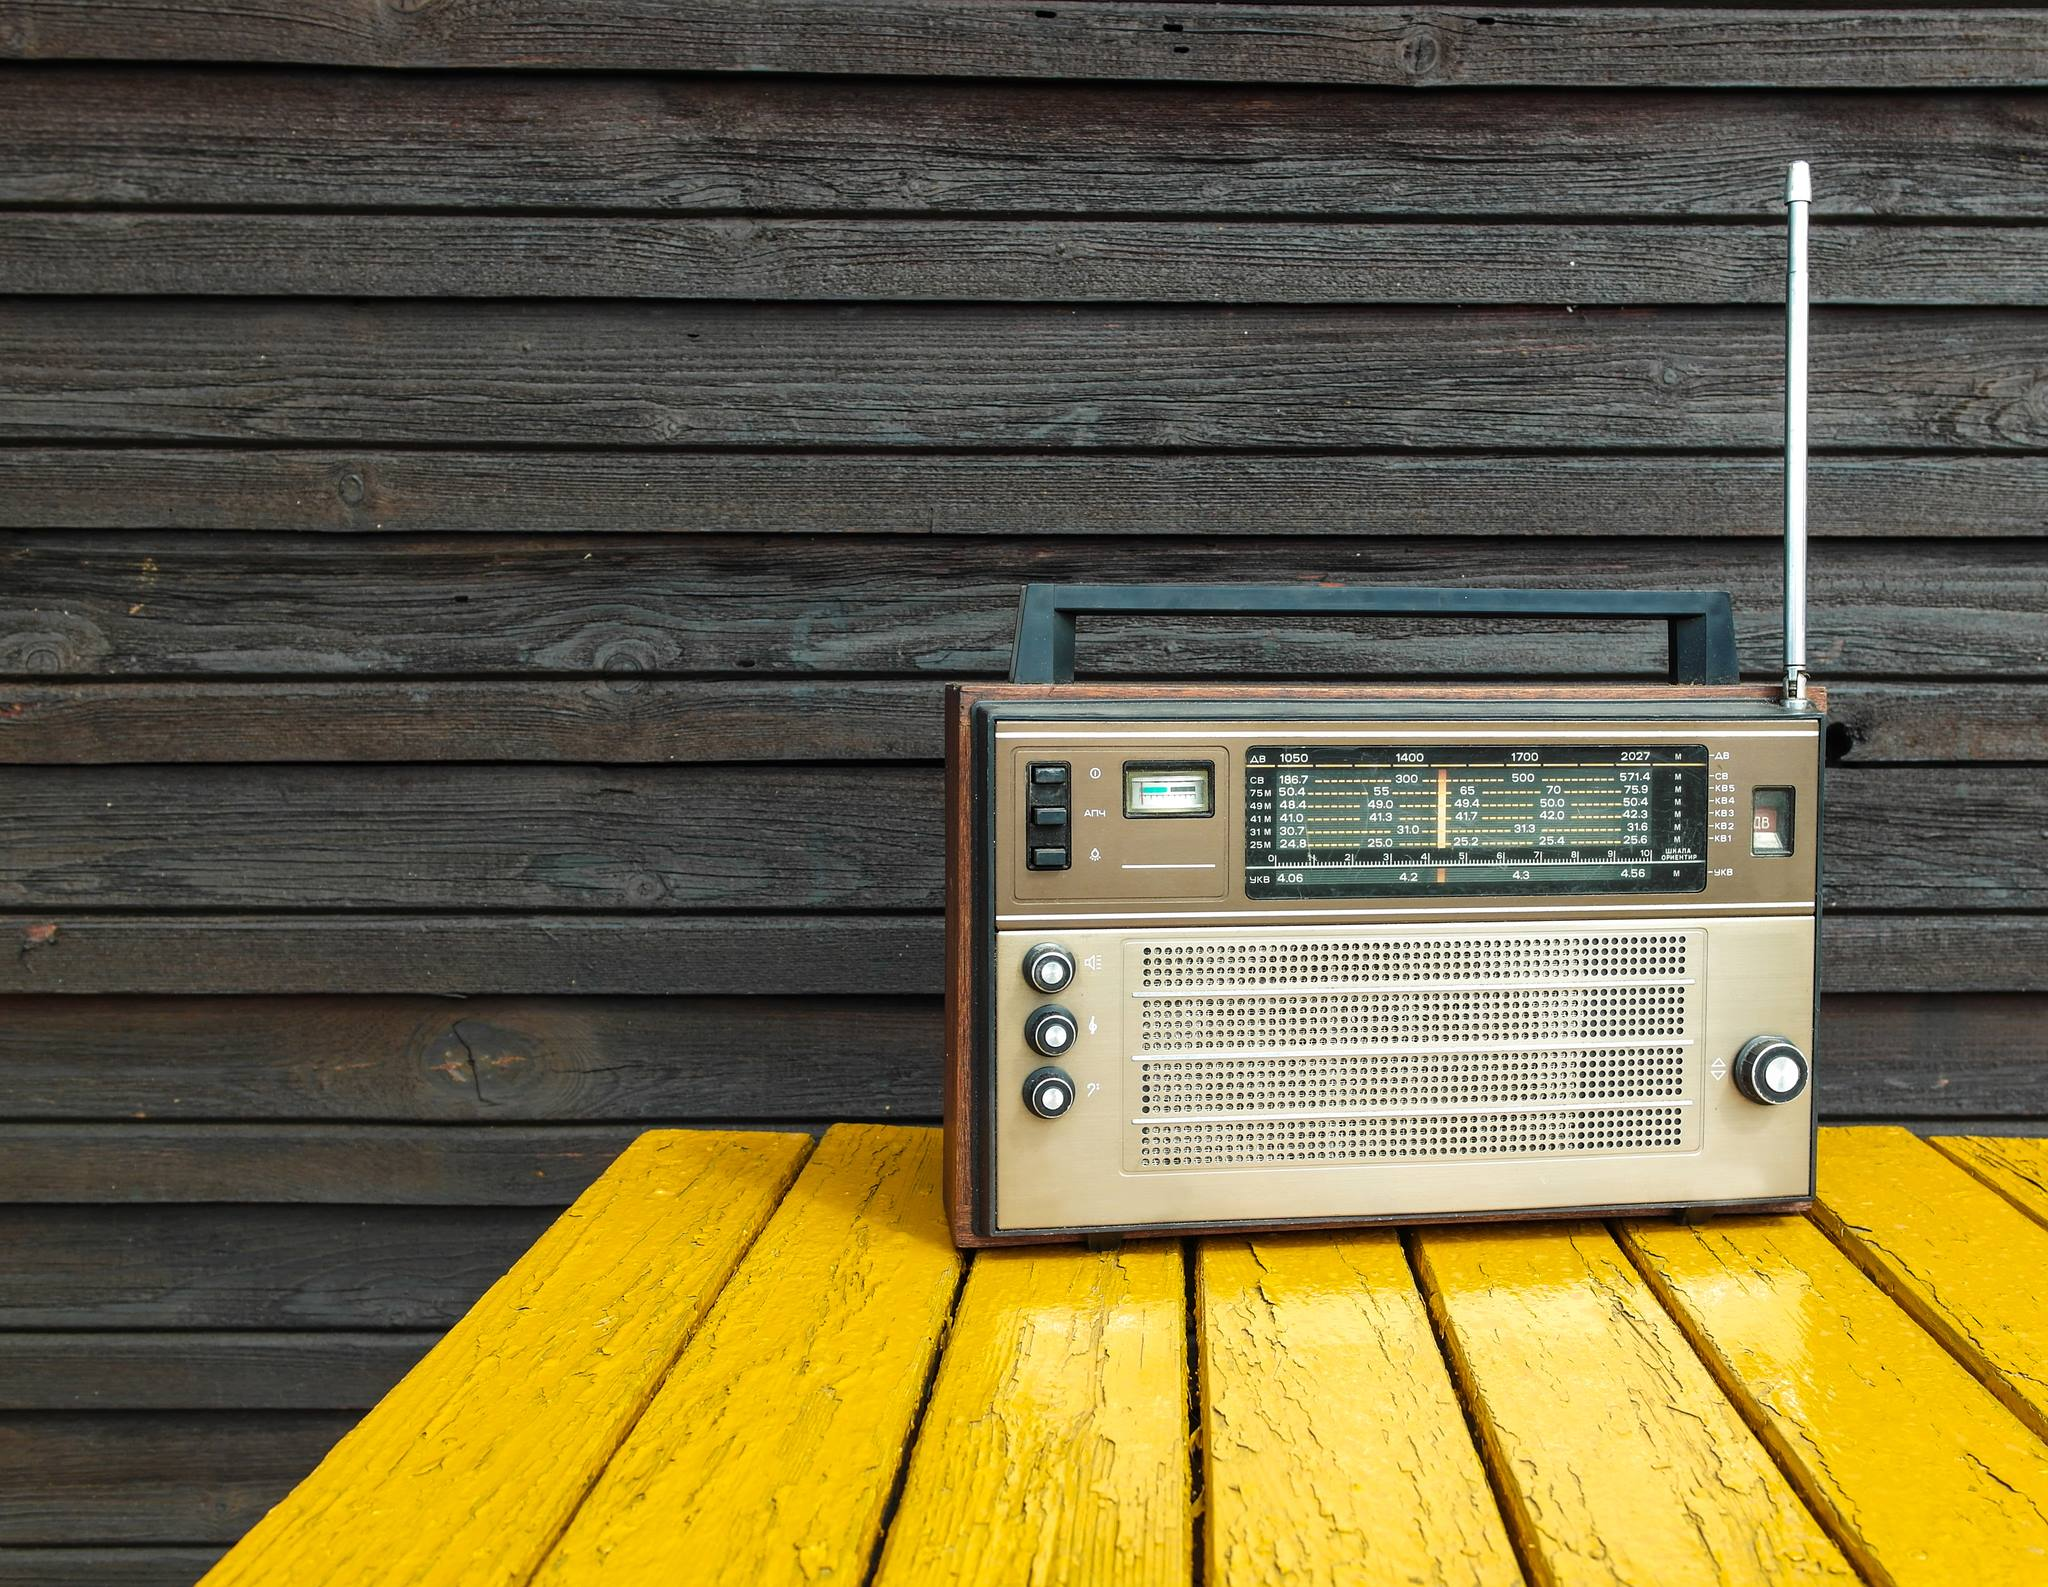 World Radio Day highlights the continued need for frequency waves